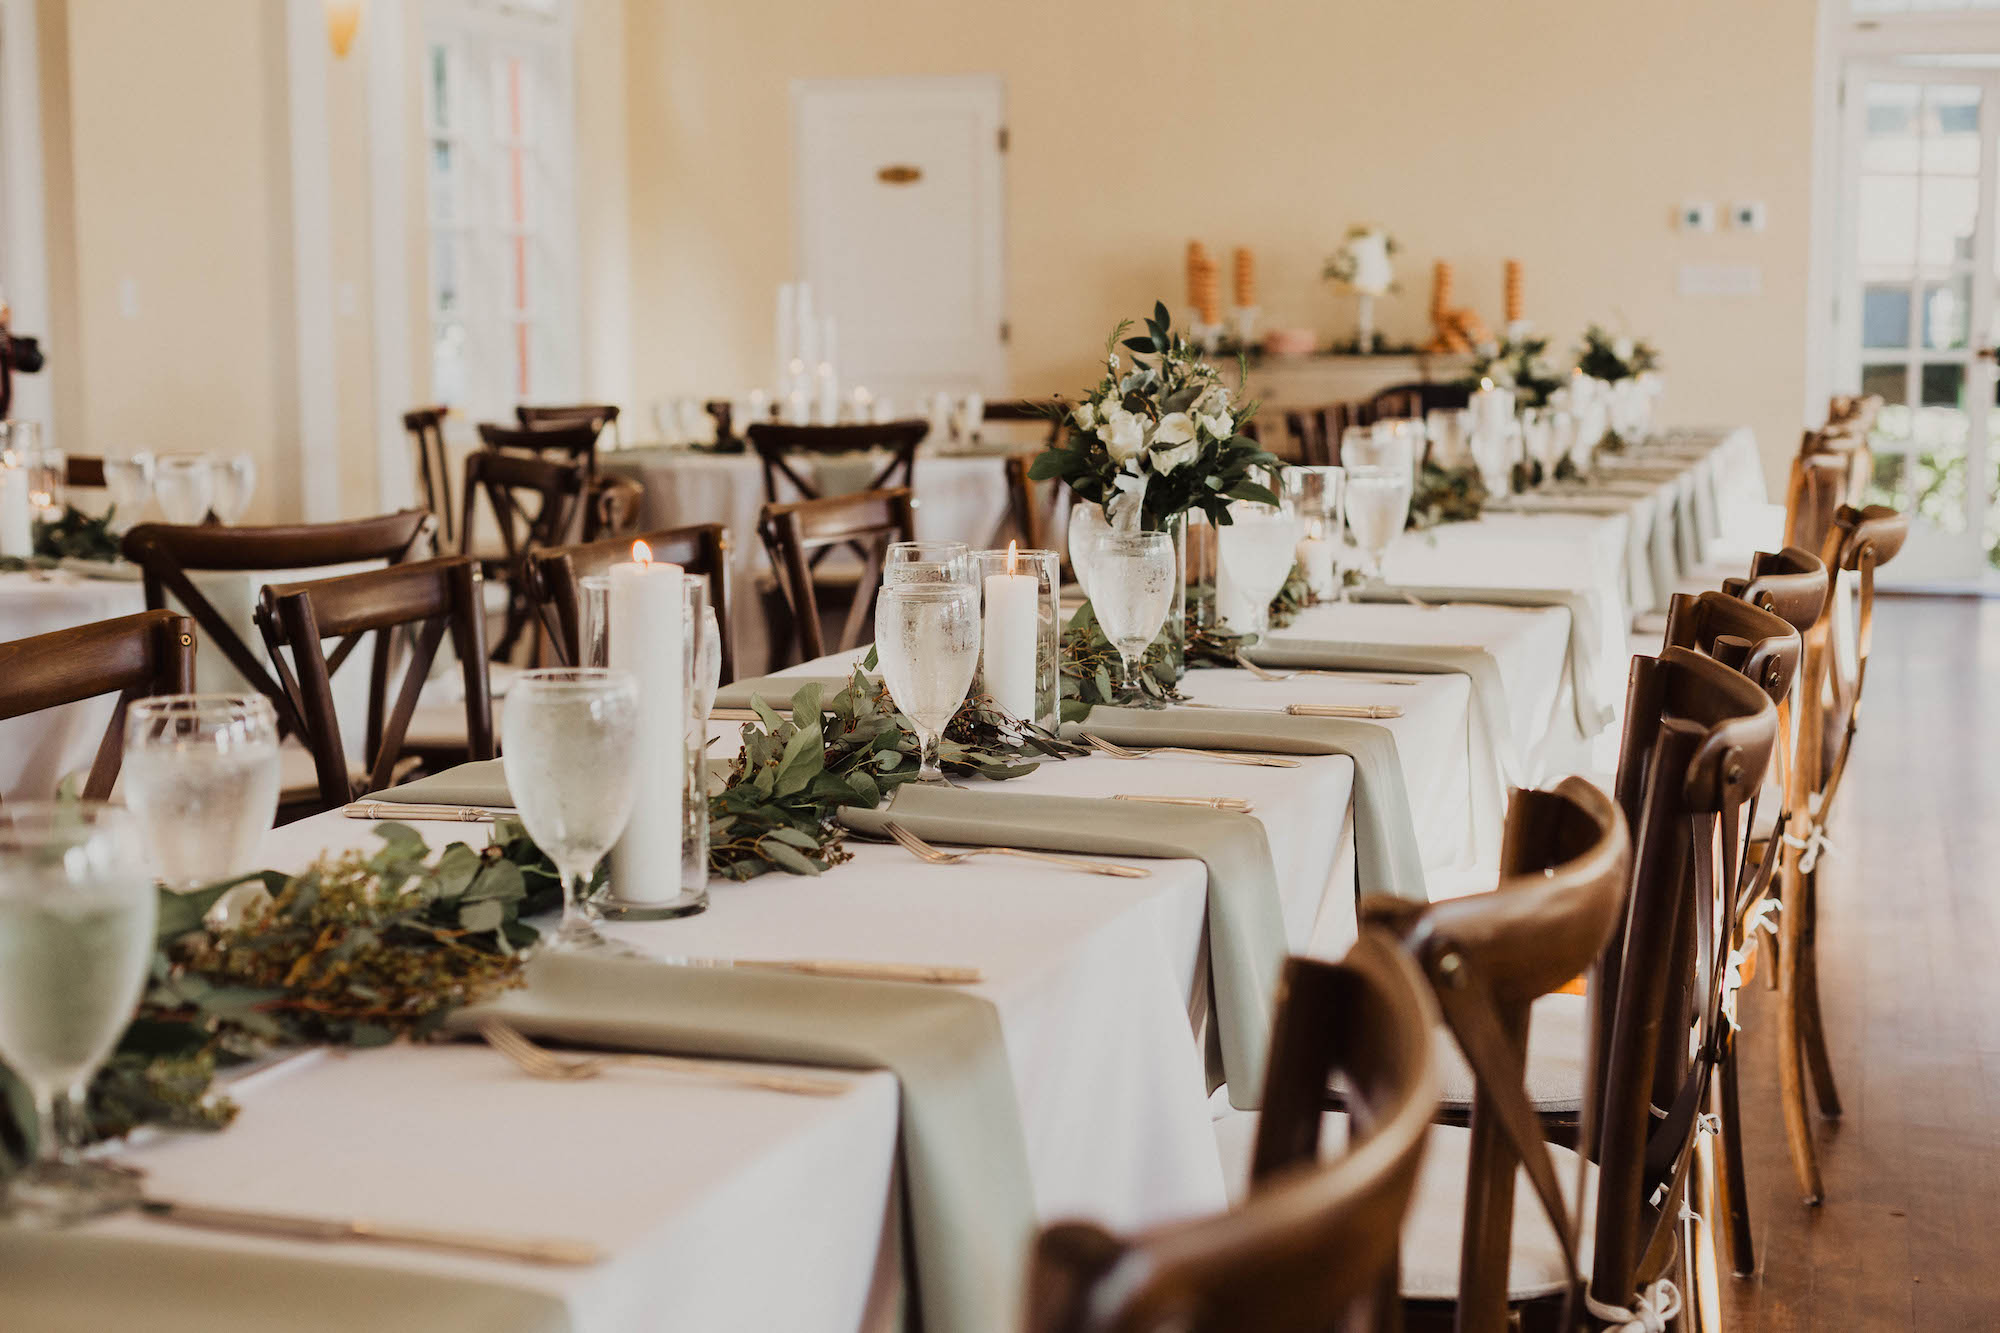 Simple Elegant Wedding Reception Decor Long Feasting Table With White Tablecloths Sage Green Linen Napkins Wood Chiavari Chairs Eucalyptus Greenery Garland South Tampa Wedding Venue The Orlo Marry Me Tampa